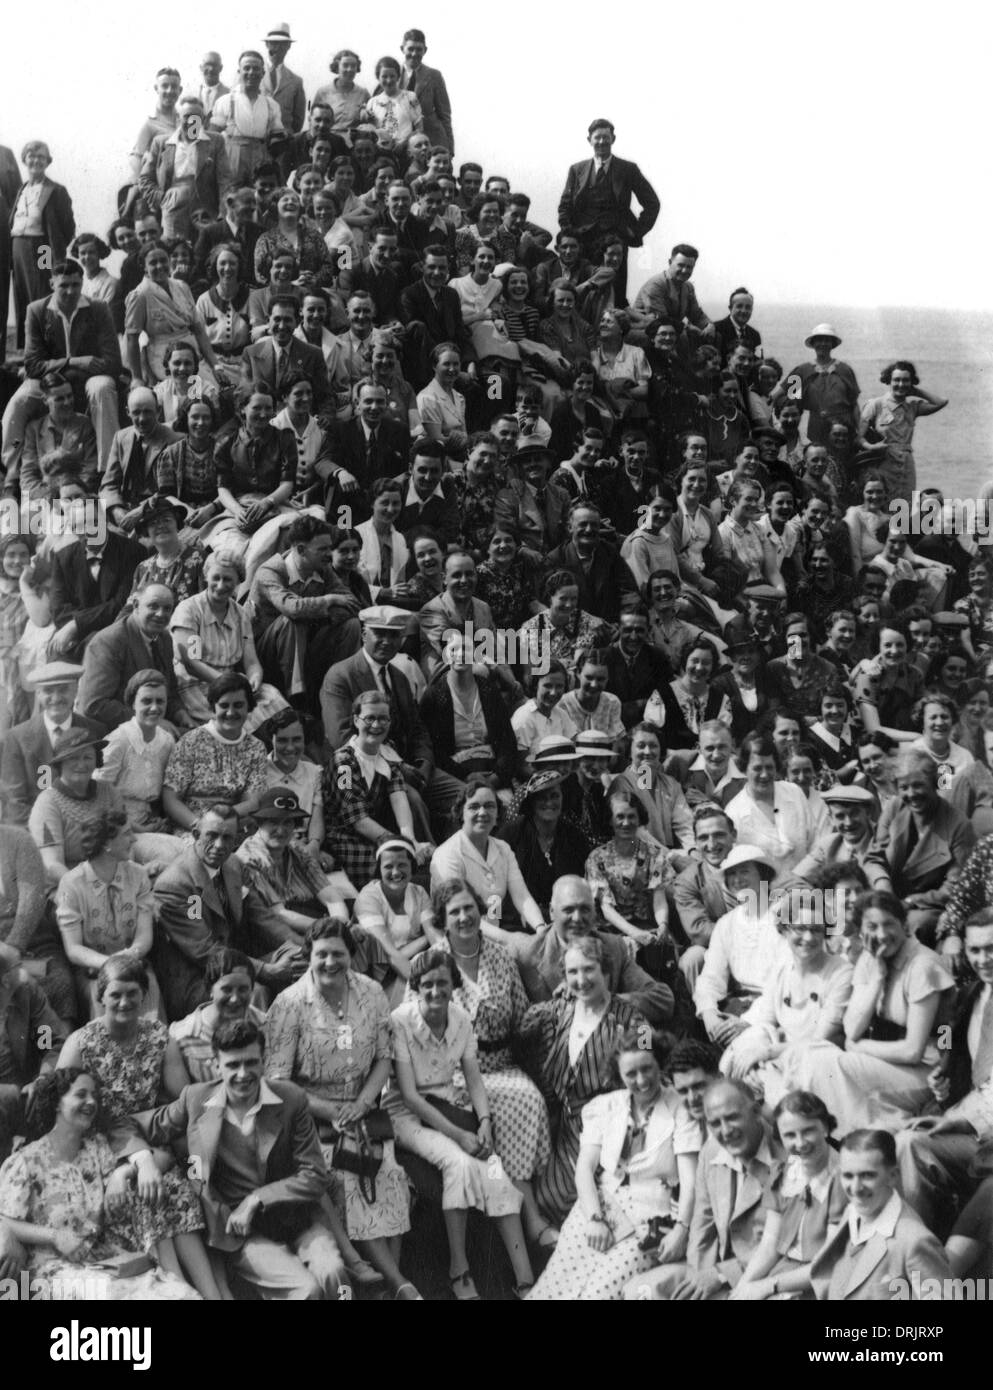 A great crowd of people pose for a photograph by the sea. - Stock Image